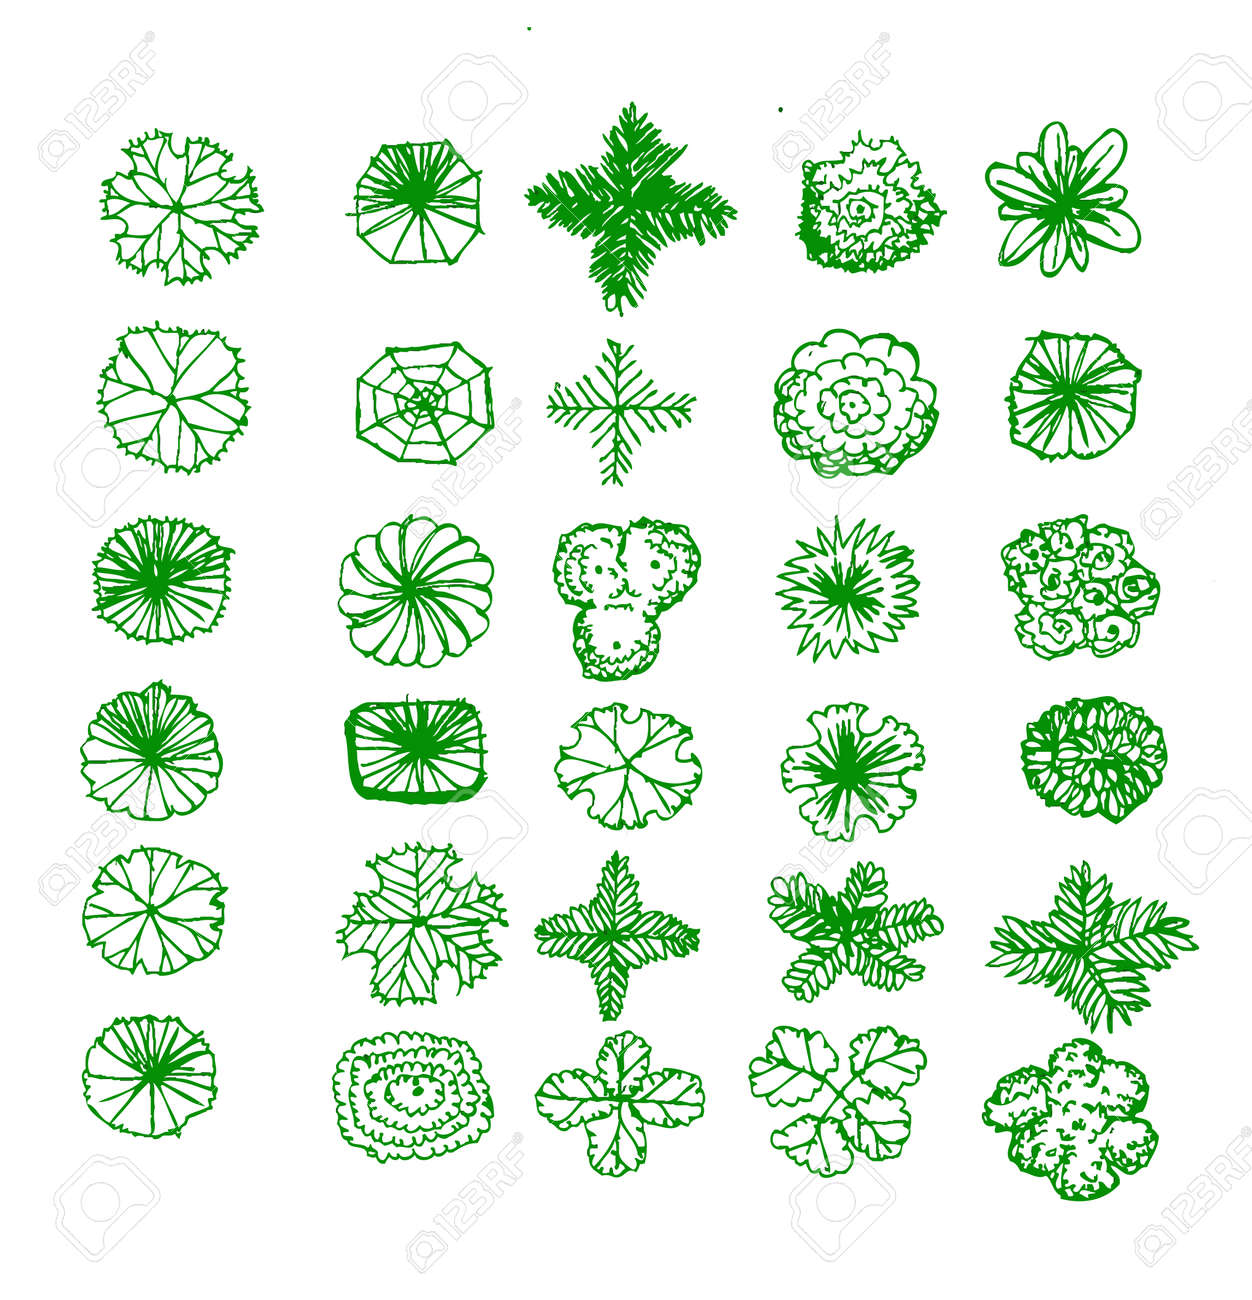 Plant top view vector in group download free vector art stock - Tree Top View Trees Top View For Architecture Landscape Design Projects